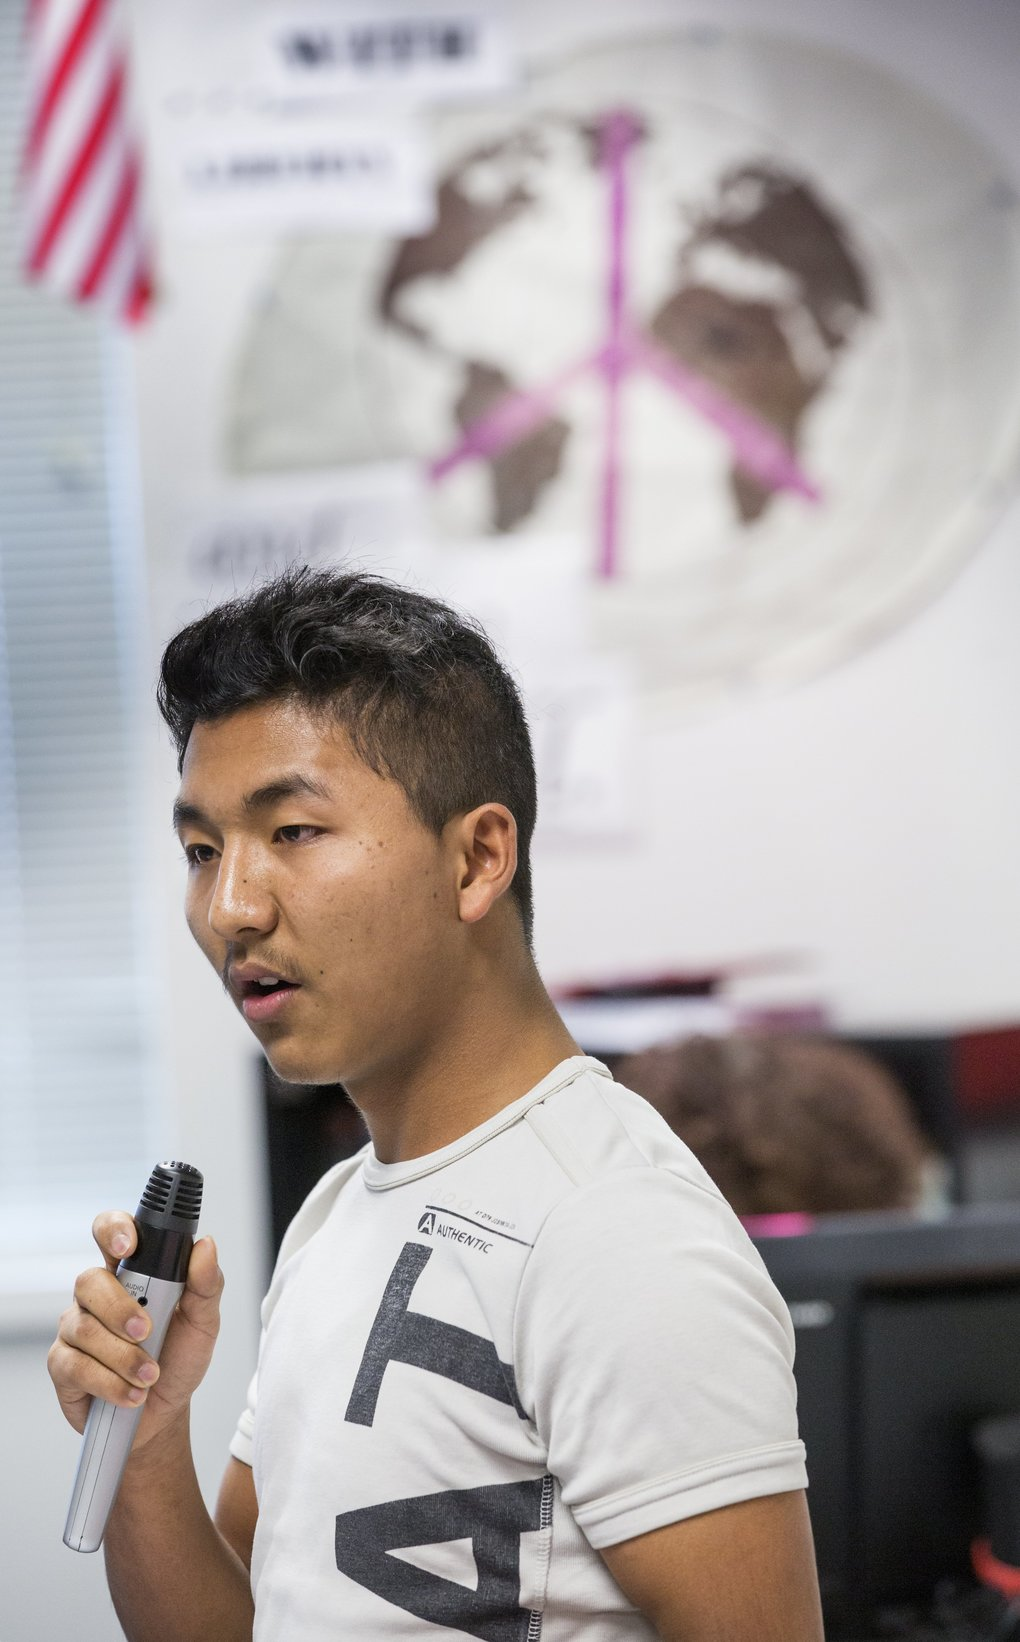 """Students at Foster High School prepare for the launch of """"Stories of Arrival, """" an anthology of poems about their journey to America. Kang Pu takes his turn reading his poem during class.  (Mike Siegel/The Seattle Times)"""